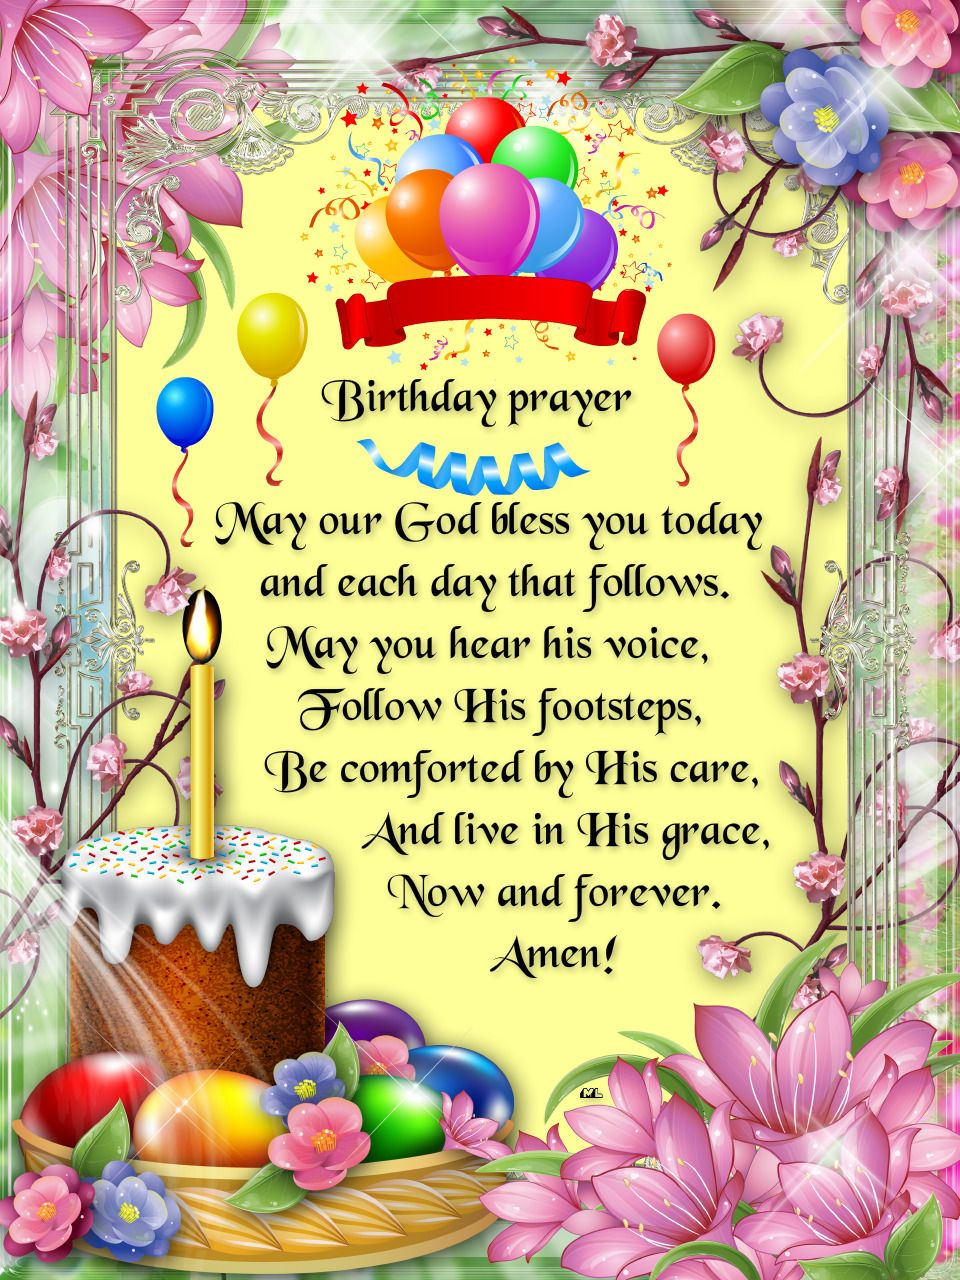 Birthday Prayer May Our God Bless You Today And Each Day That Follows May You Hear Hi Christian Birthday Wishes Happy Birthday Prayer Birthday Wishes Quotes